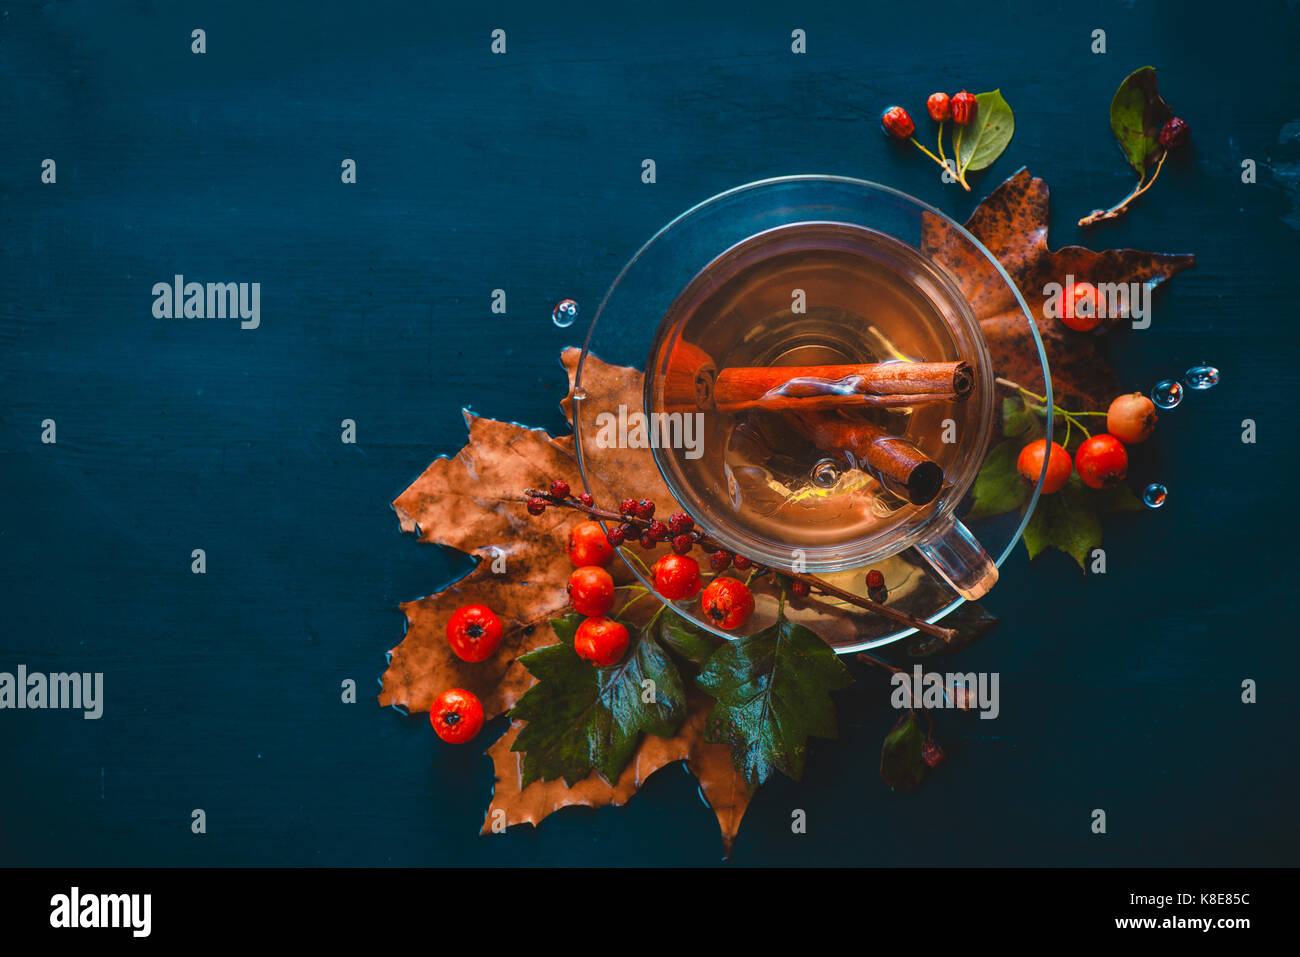 Dark autumn still life with tea cup, leaves, berries and cinnamon on a wet background. Tea cup from above. - Stock Image